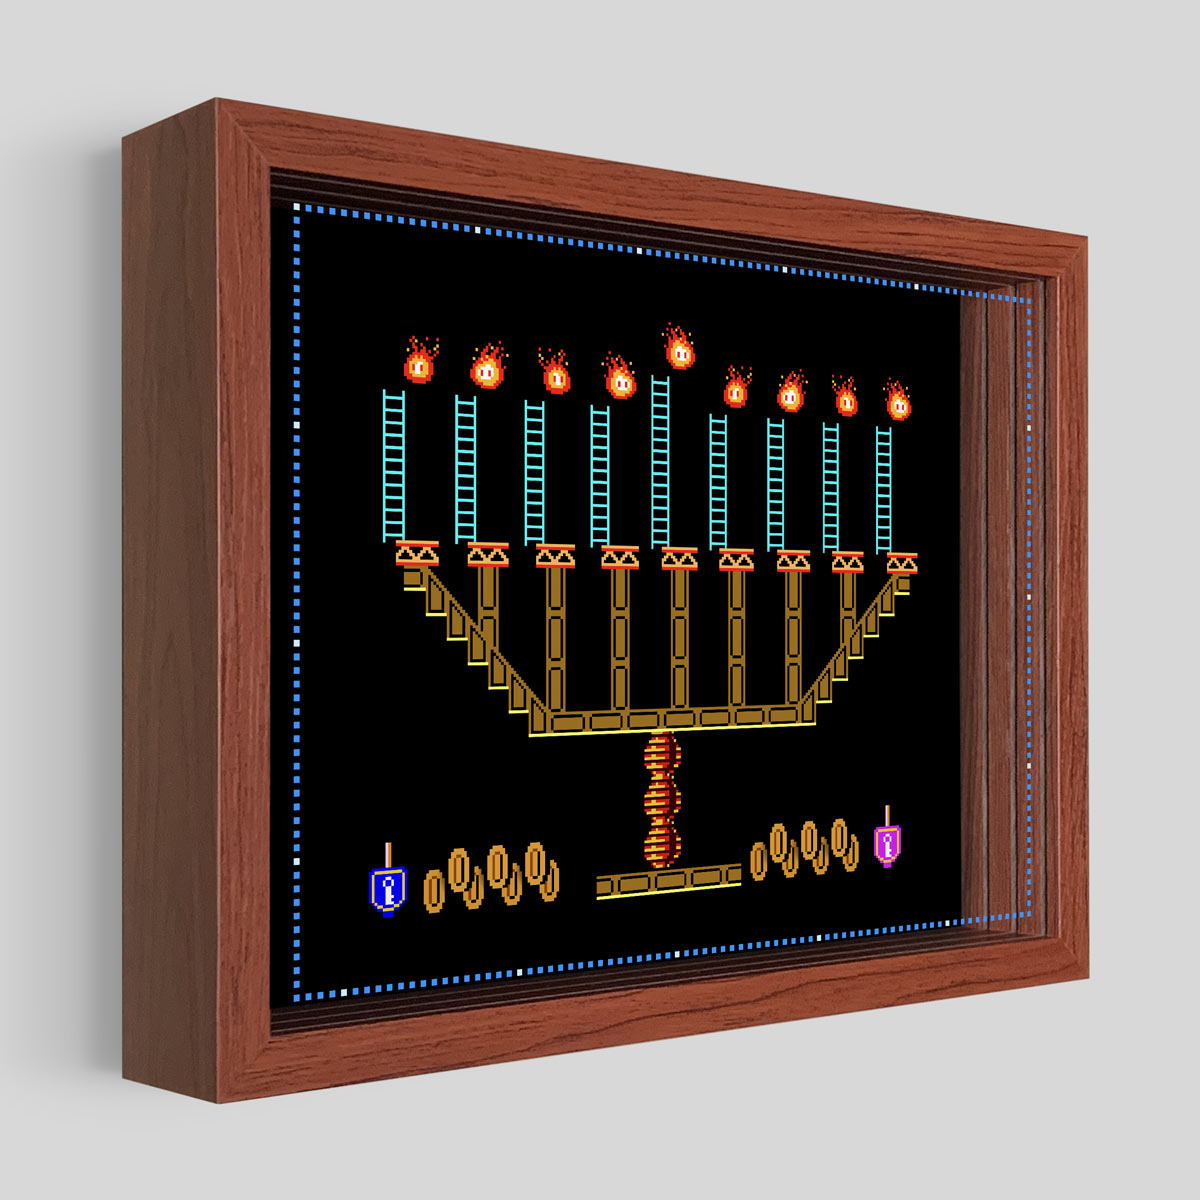 8-Bit Menorah Shadowbox Art